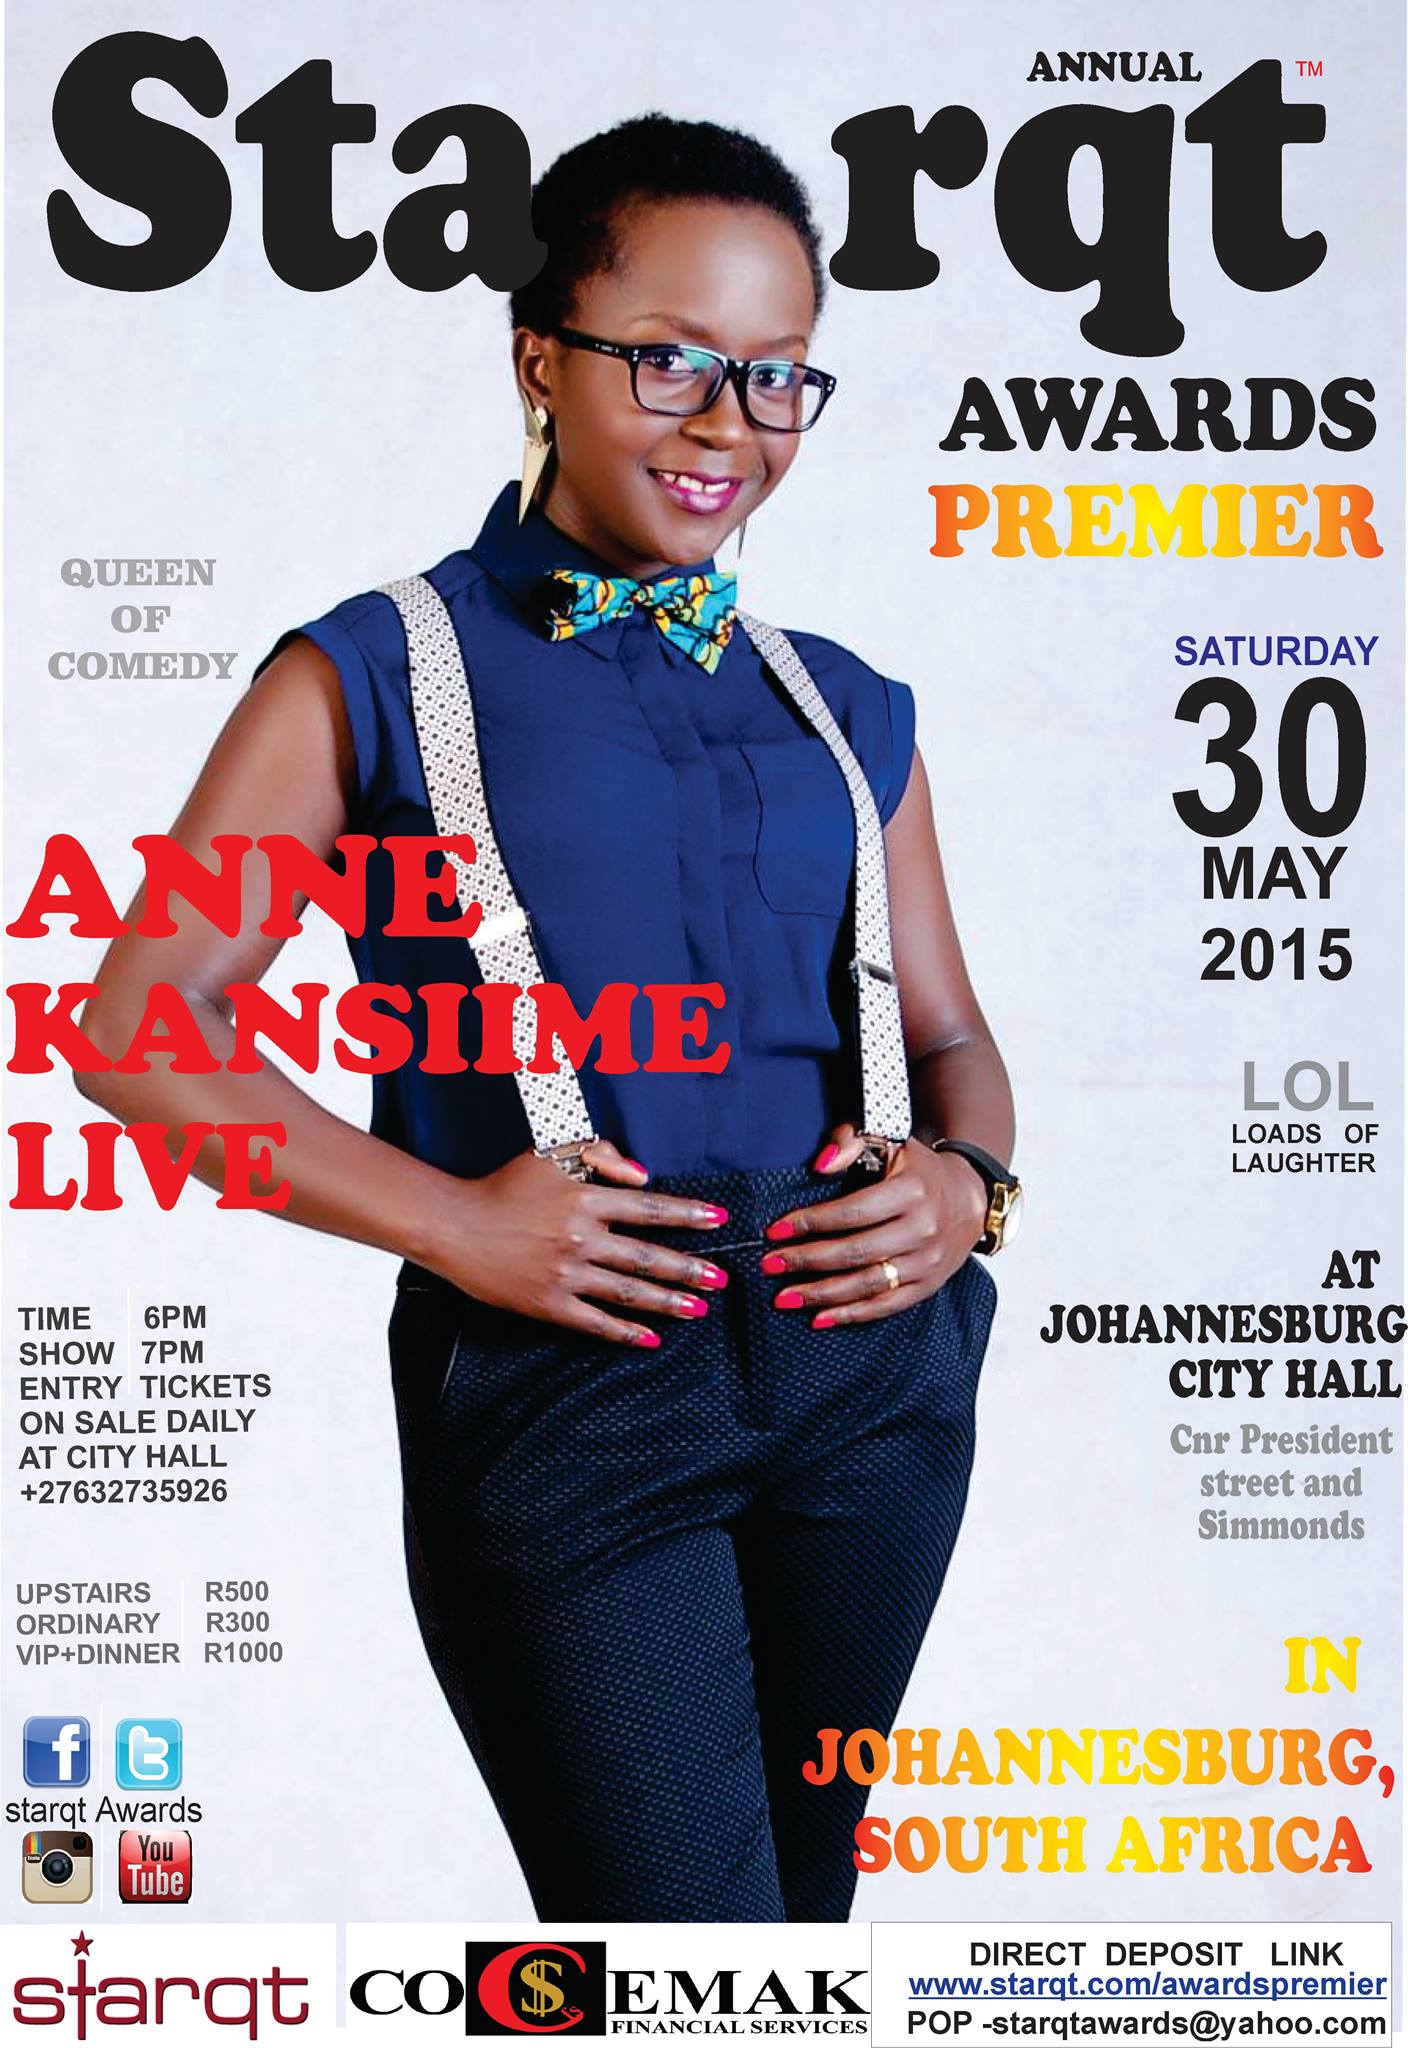 KANSIIME ANNE LIVE IN JOHANNESBURG, SOUTH AFRICA